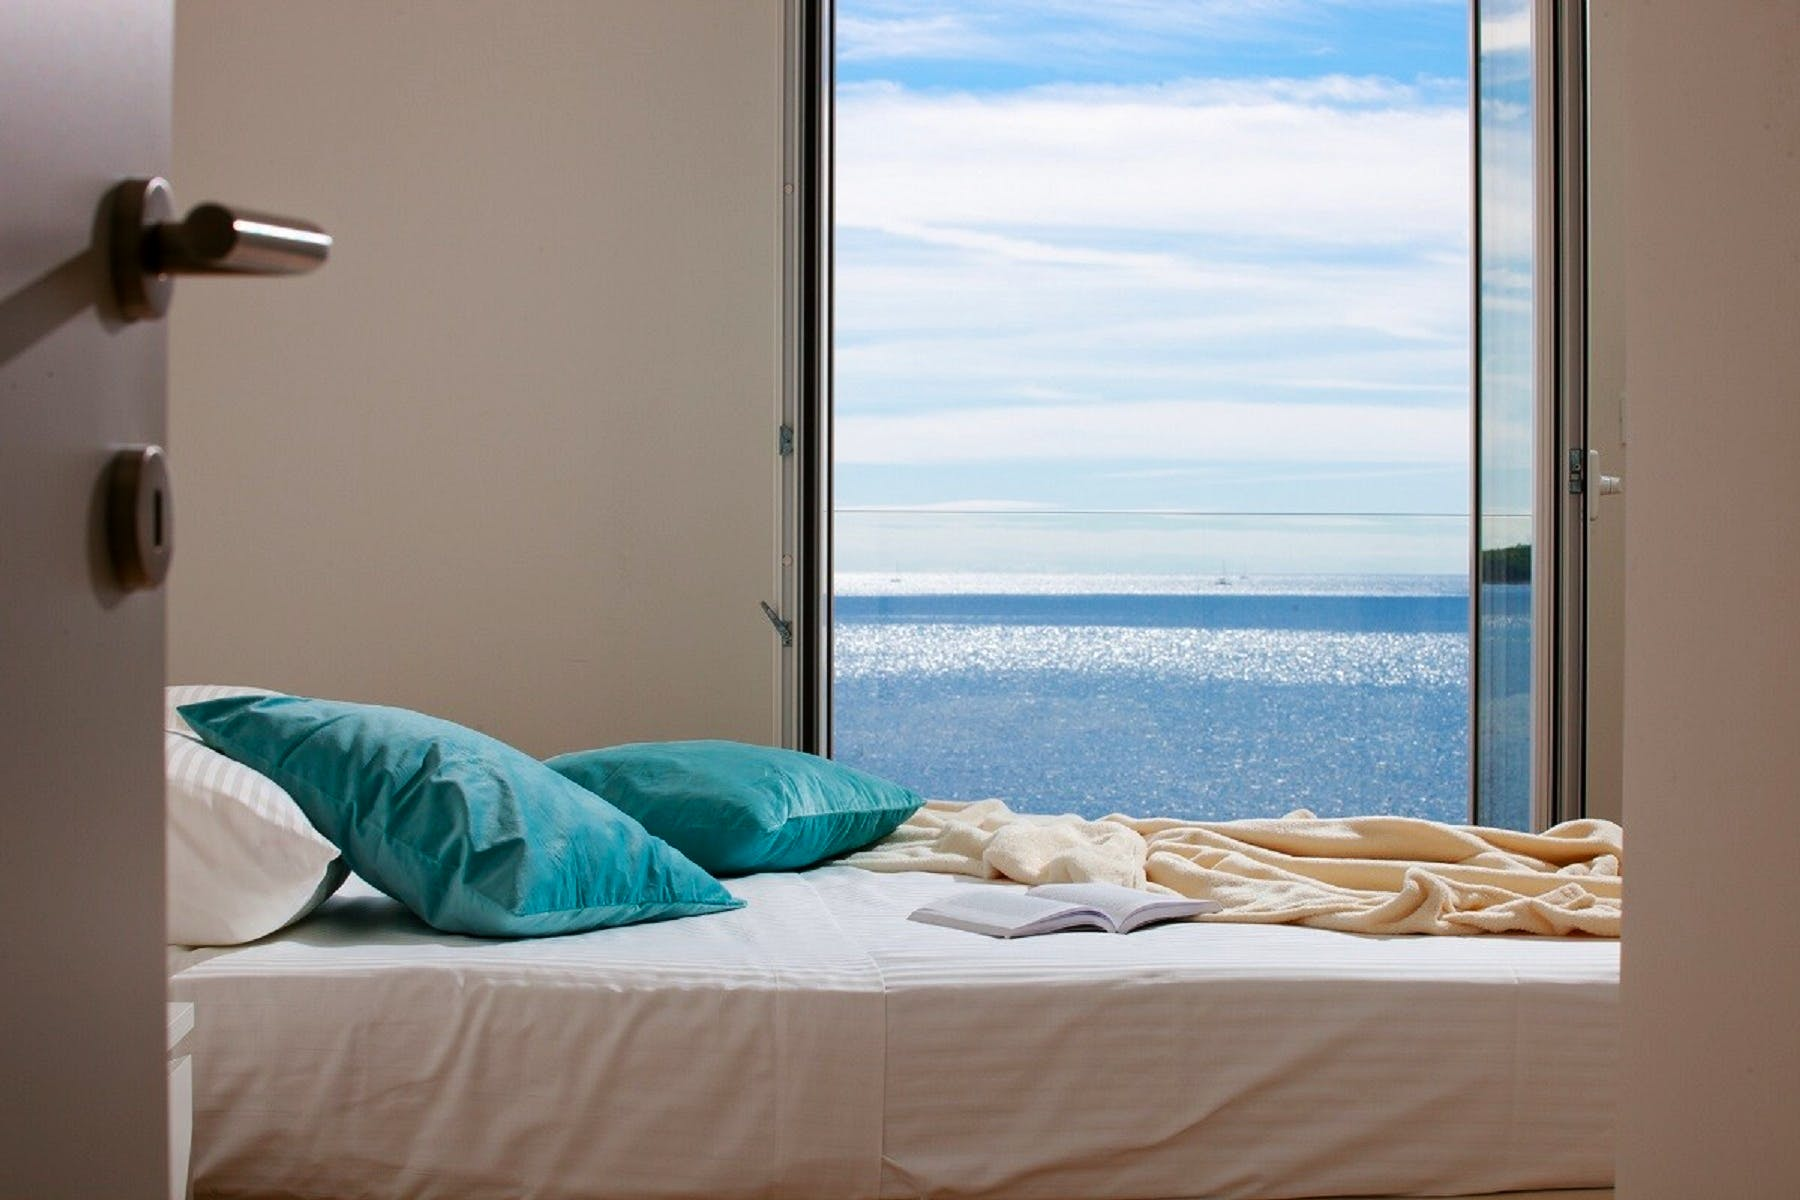 Amazing seaview from the bedroom